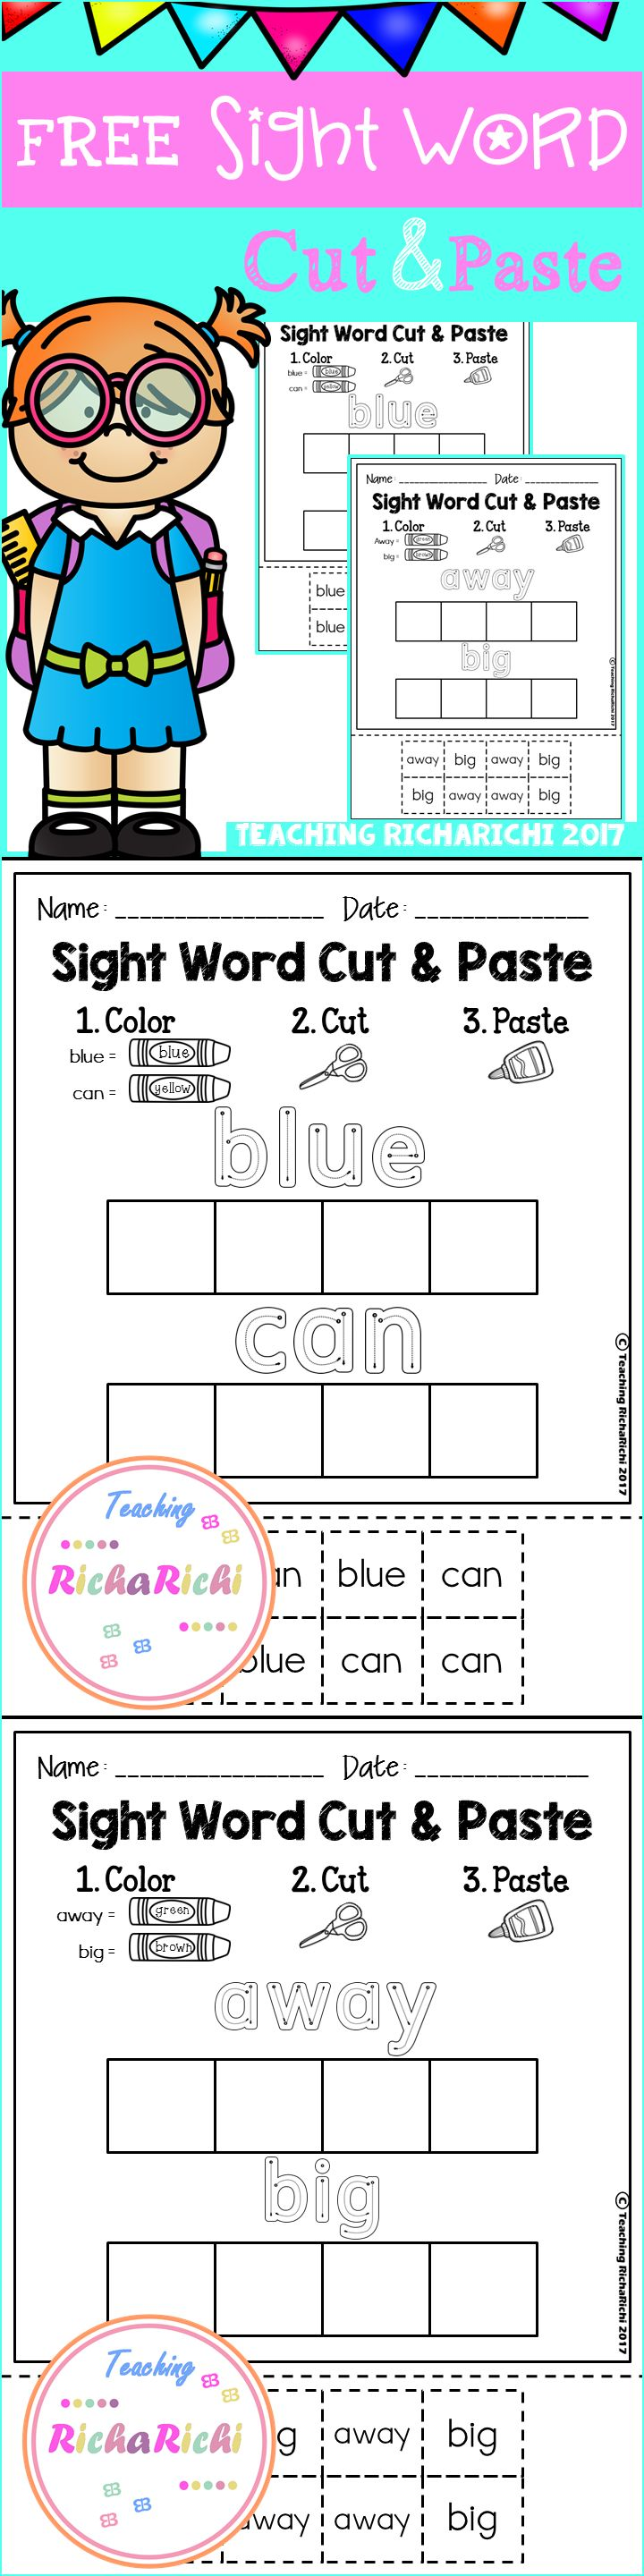 worksheet Pre K Sight Words Worksheets 10 best ideas about sight word worksheets on pinterest cut and paste pre primer inside you will find 3 pages of each page contains two s